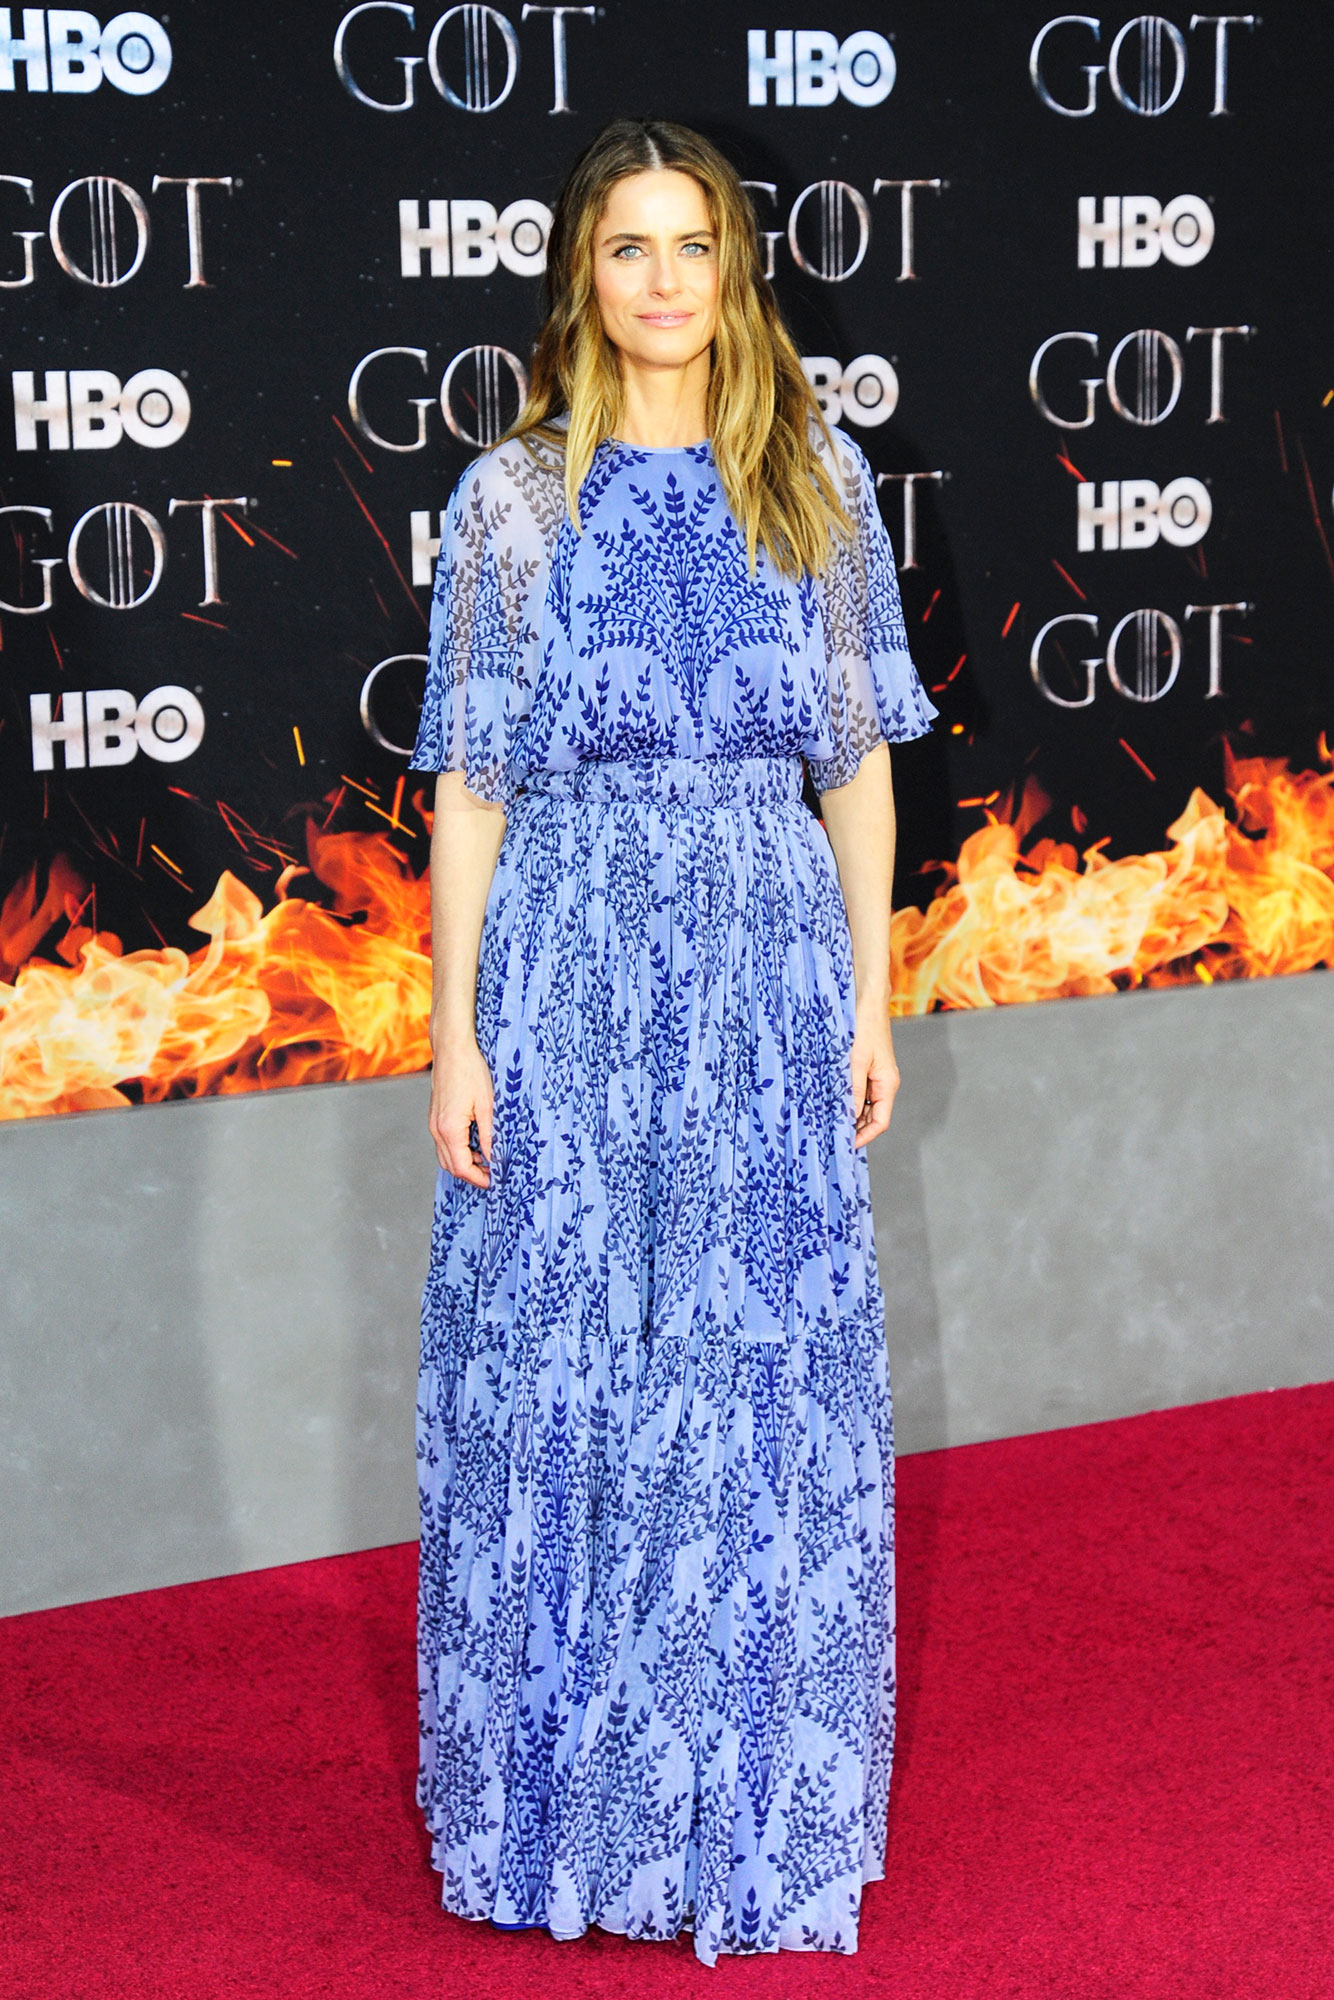 Amanda Peet game of thrones - Wearing a short-sleeve Carolina Herrera gown that Meghan Markle wore during her trip to Morocco with Prince Harry earlier this year.